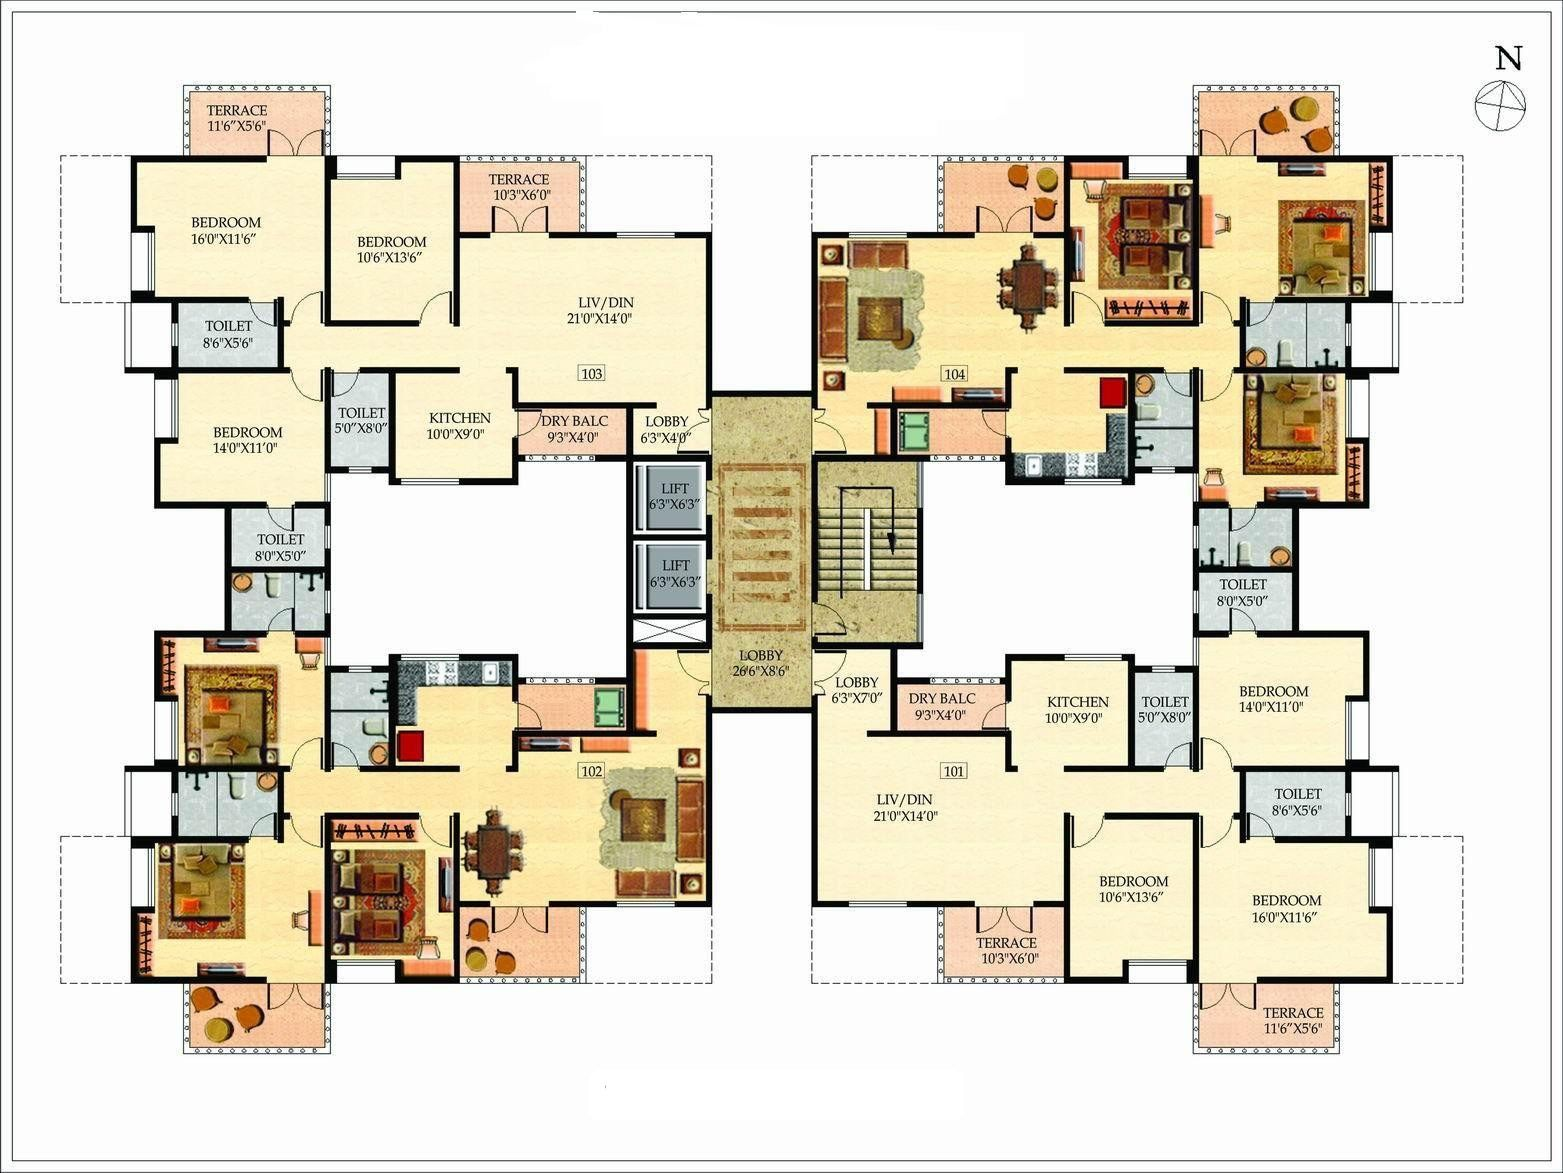 6 bedroom mansion floor plans design ideas 2017 2018 for Best floor plan ever